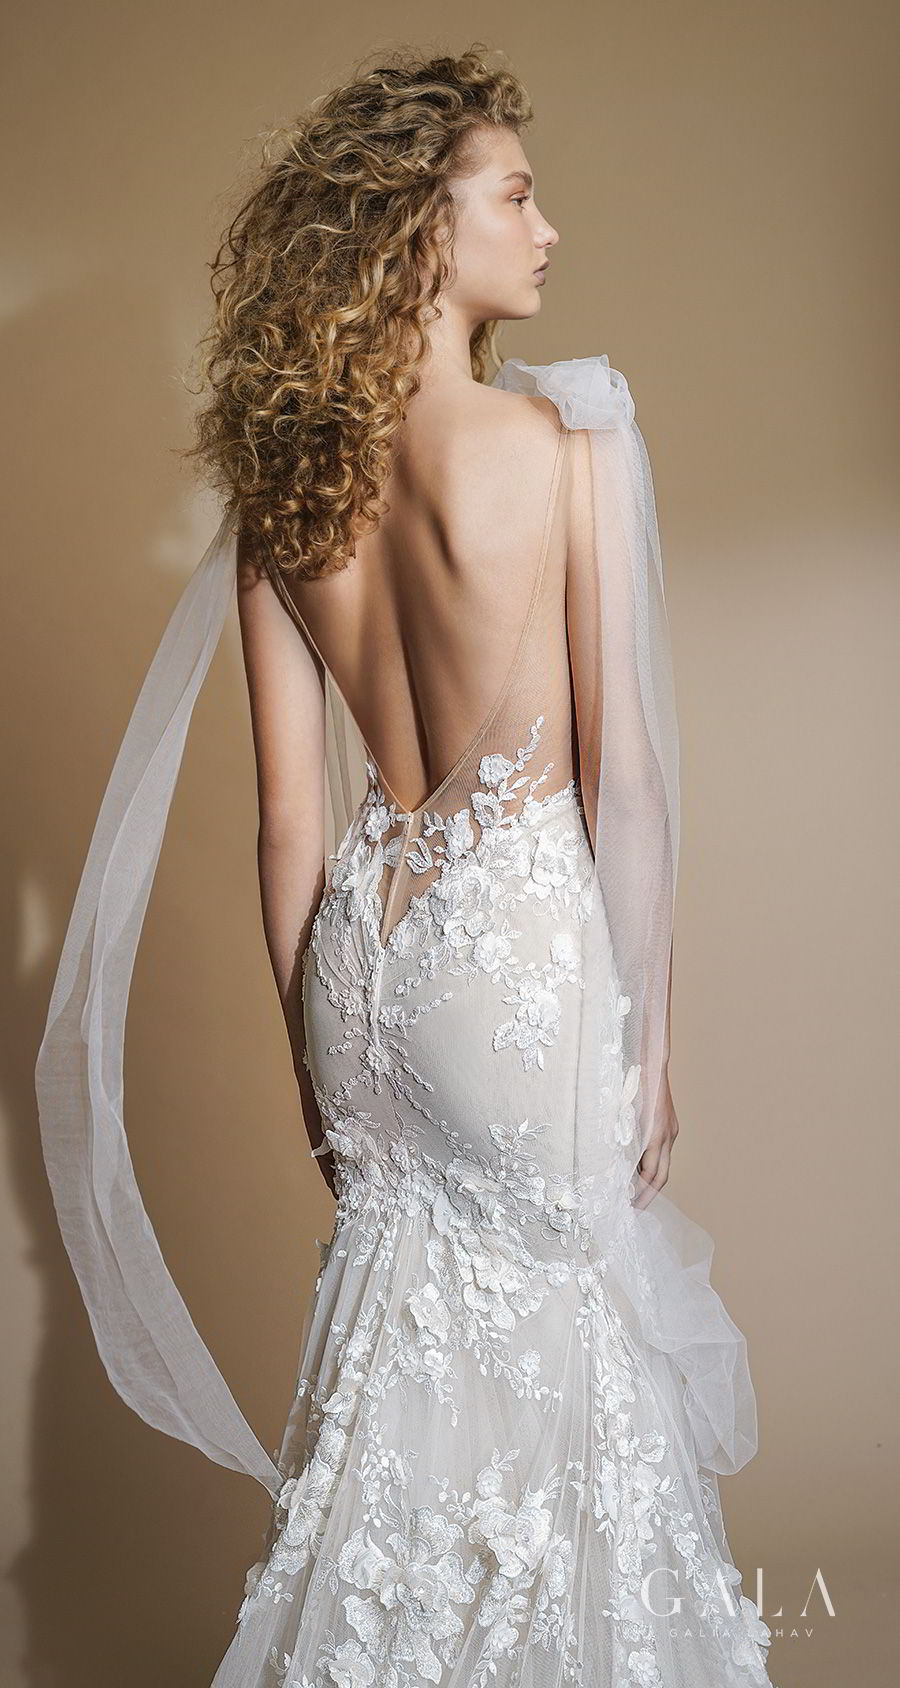 galia lahav gala 2019 bridal sleeveless with strap deep plunging v neck full embellishment sexy romantic trumpet mermaid wedding dress low open back chapel train (104) zbv